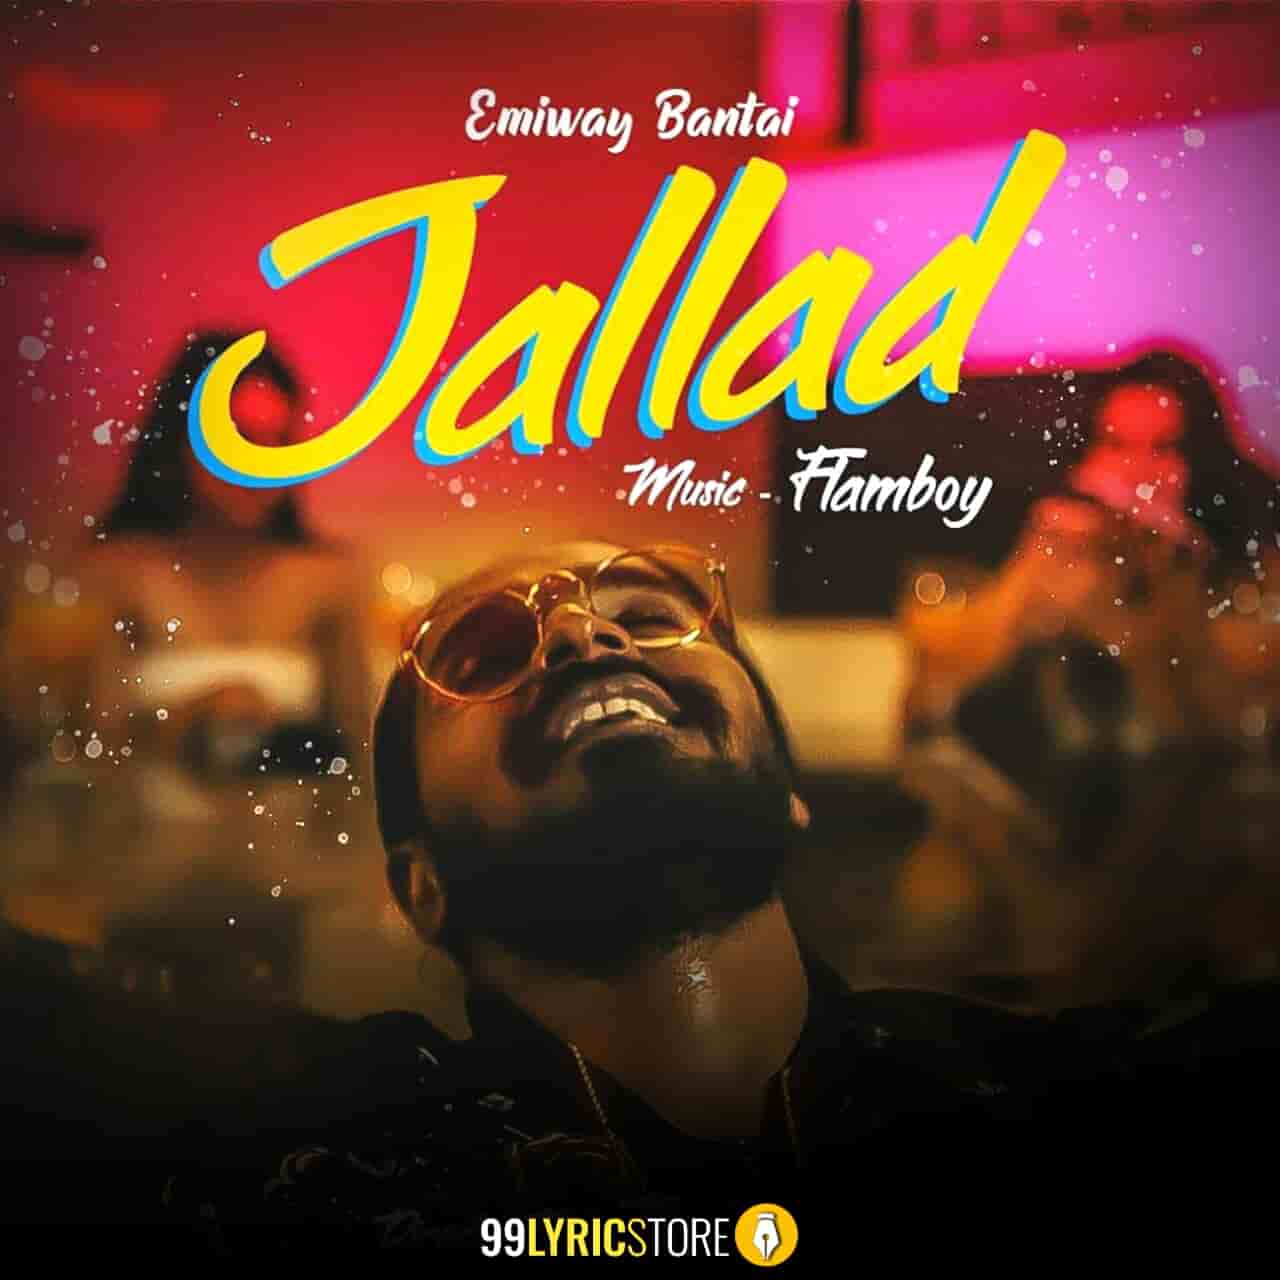 Jallad Hip hop song lyrics sung by Emiway Bantai